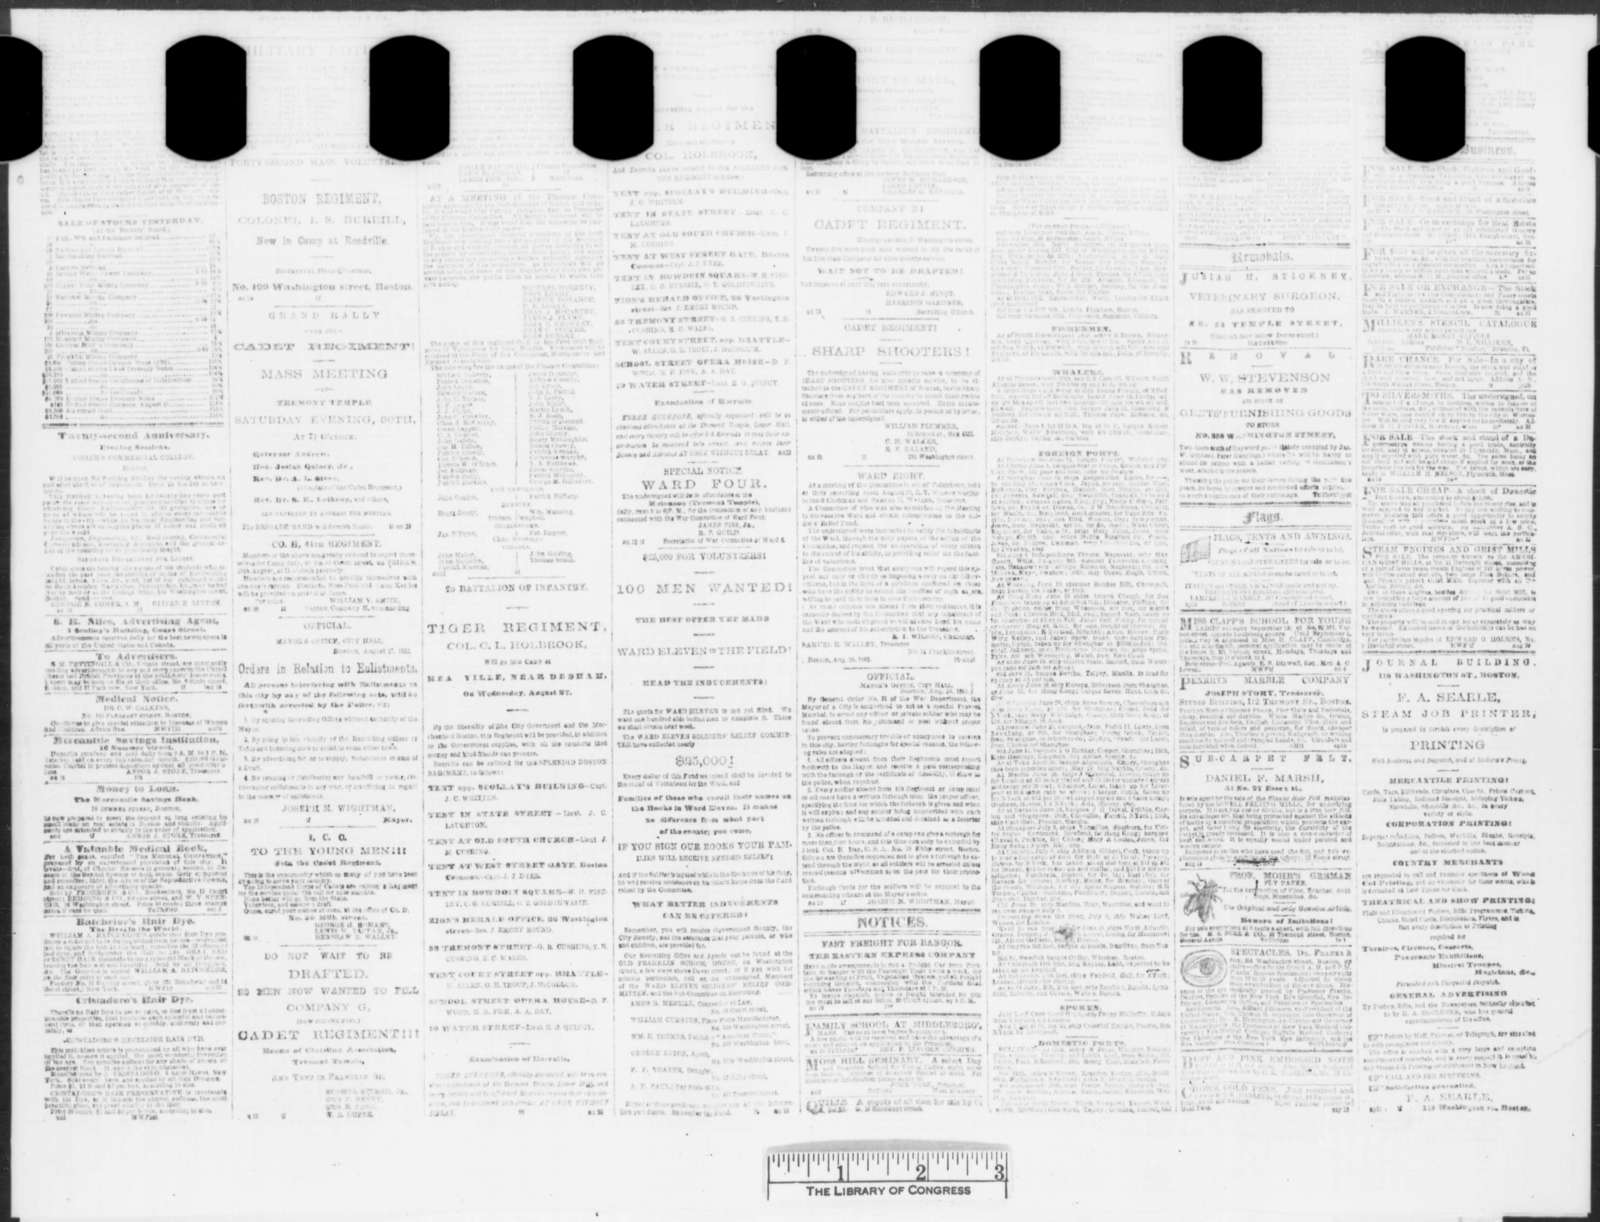 Boston Morning Journal, Friday, August 29, 1862  (Newspaper)